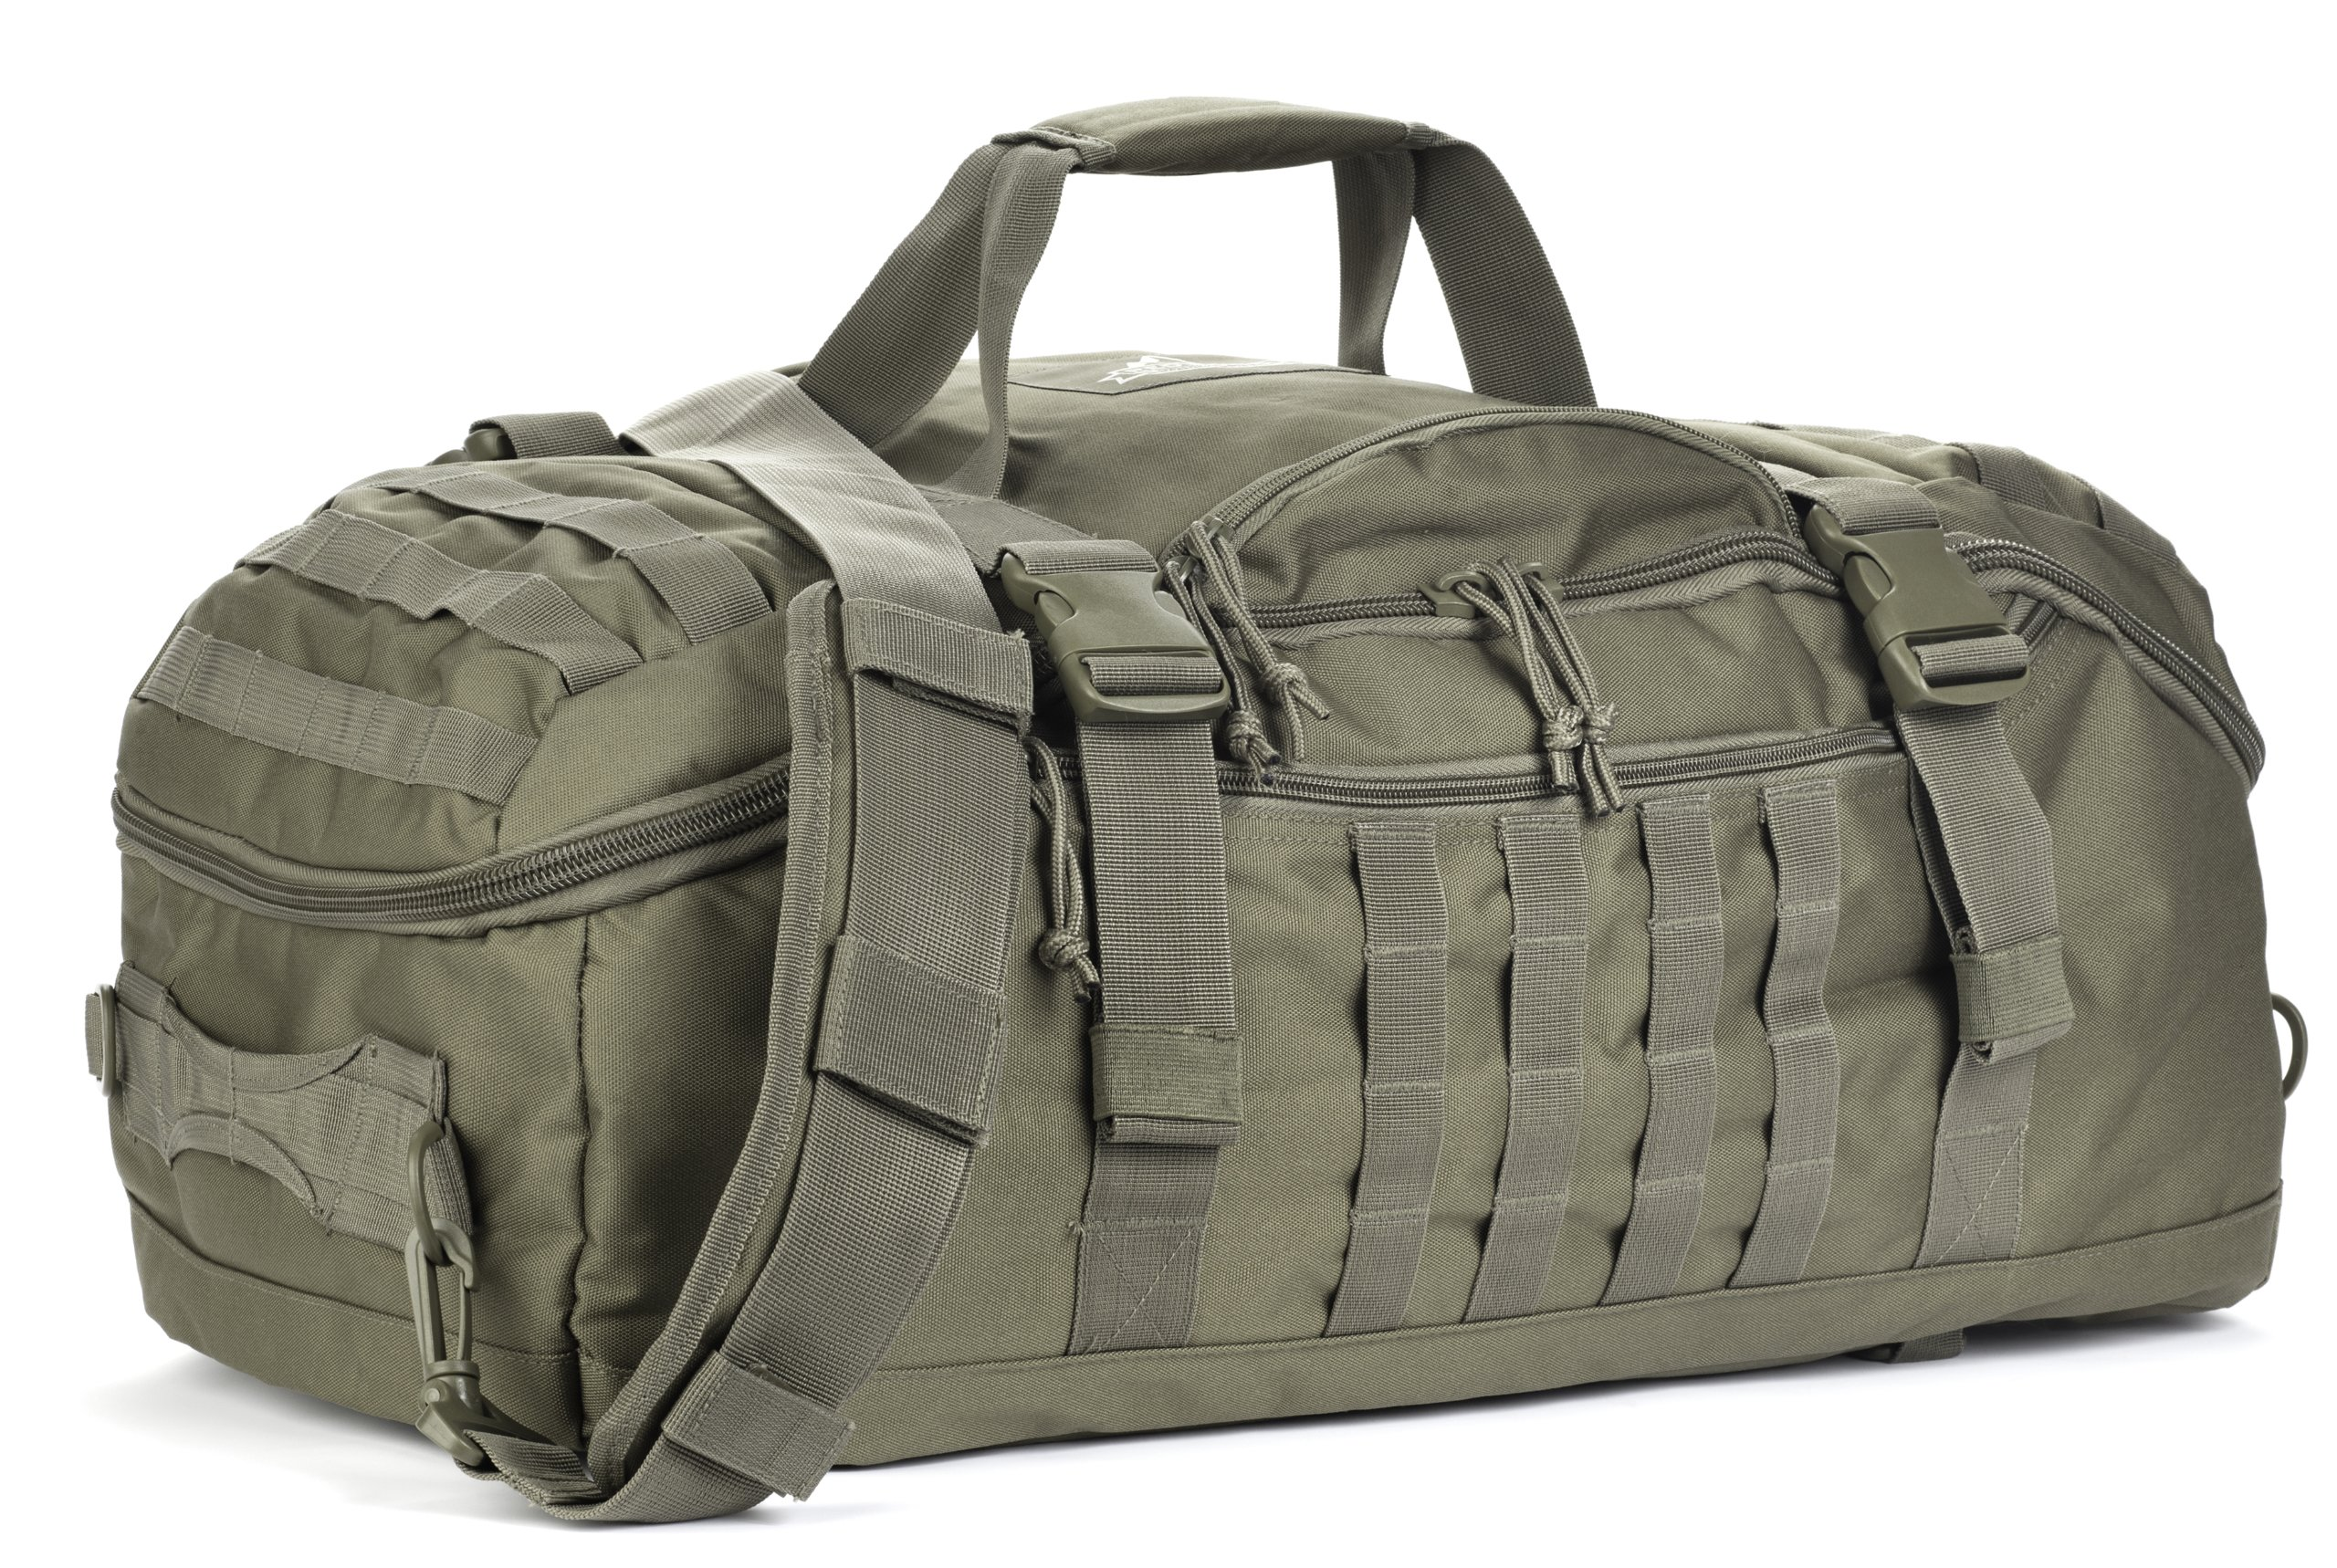 Red Rock Outdoor Gear Traveler Duffle Bag (Olive Drab)